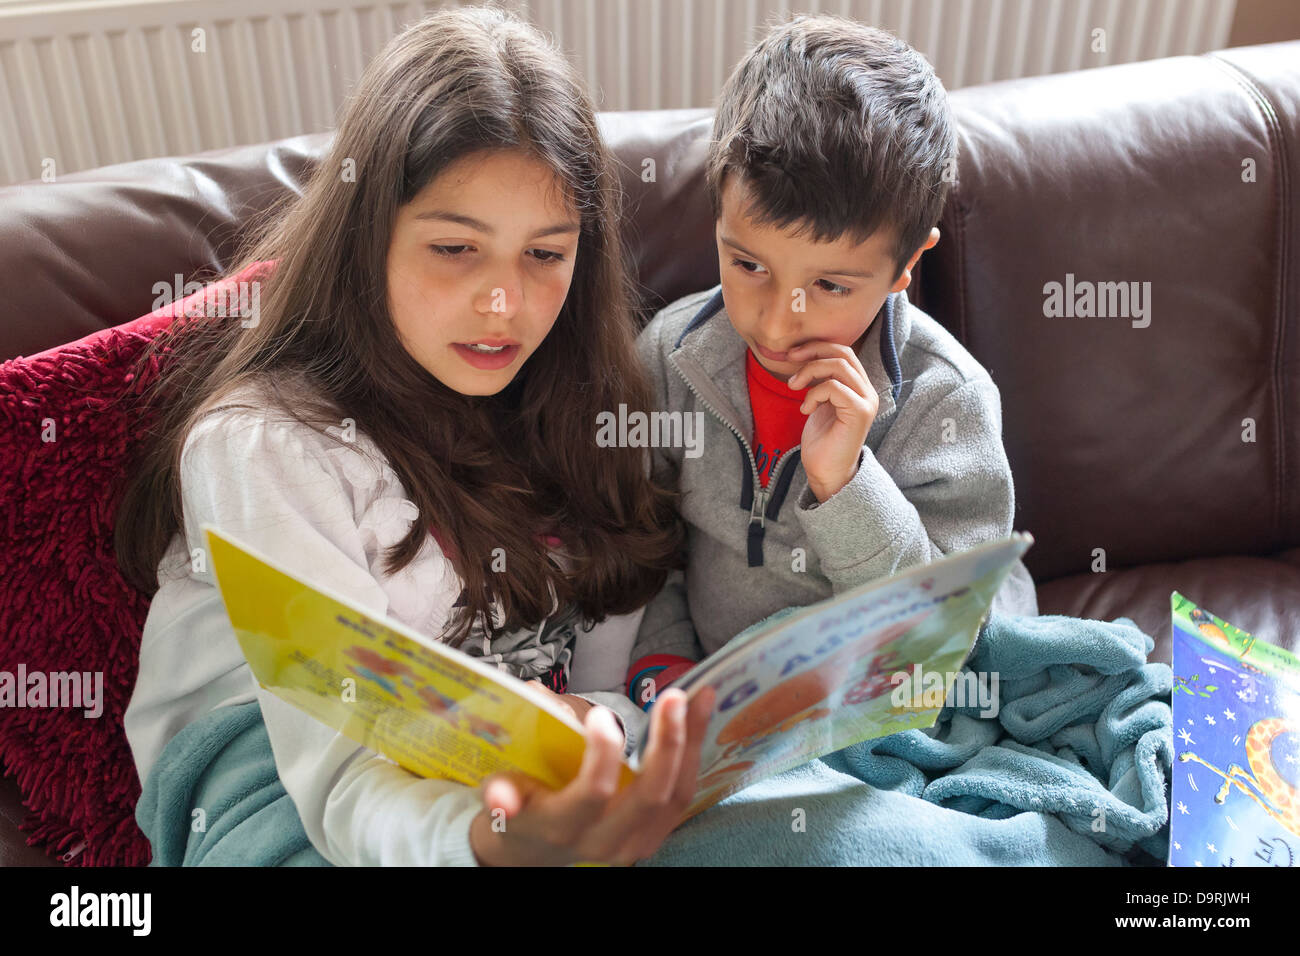 Older sister reading a story to her brother - Stock Image